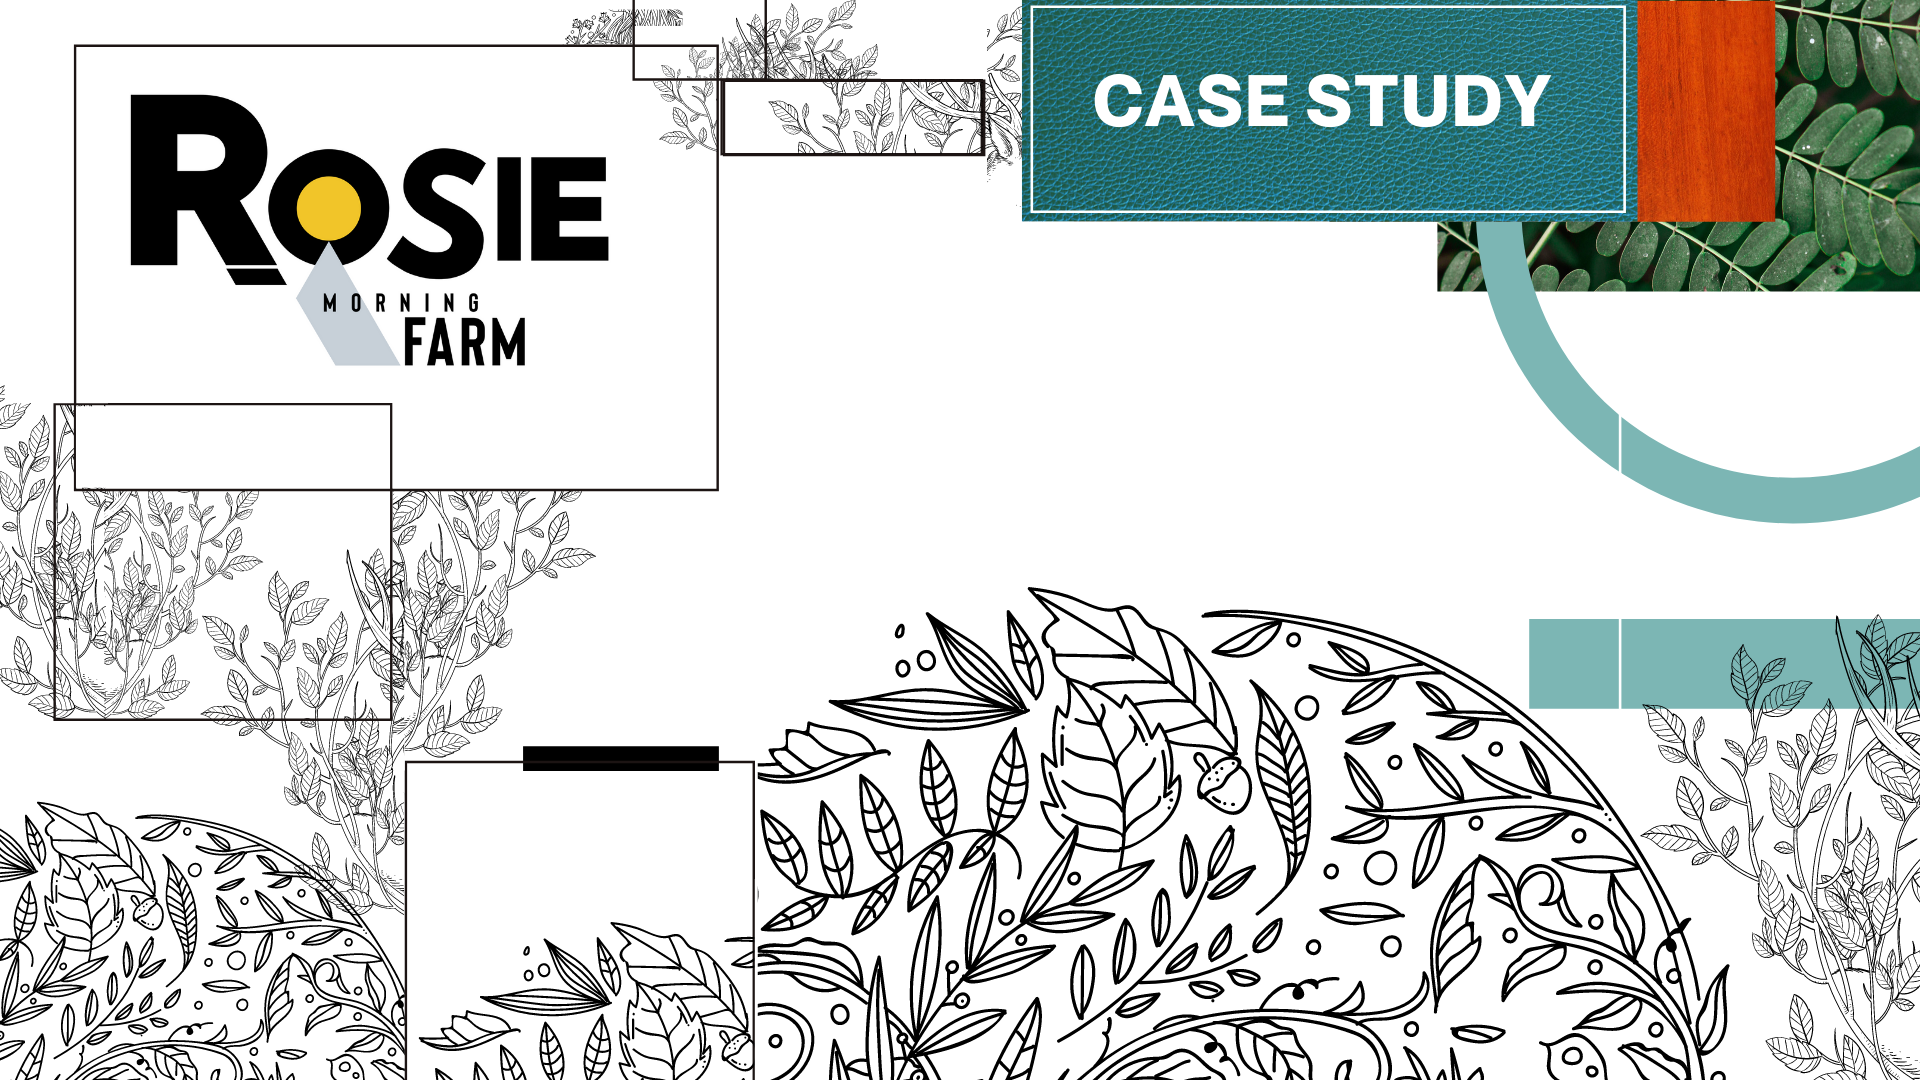 Title card of Rosie Morning Farm case study by marketing and design agency Owl Street Studio